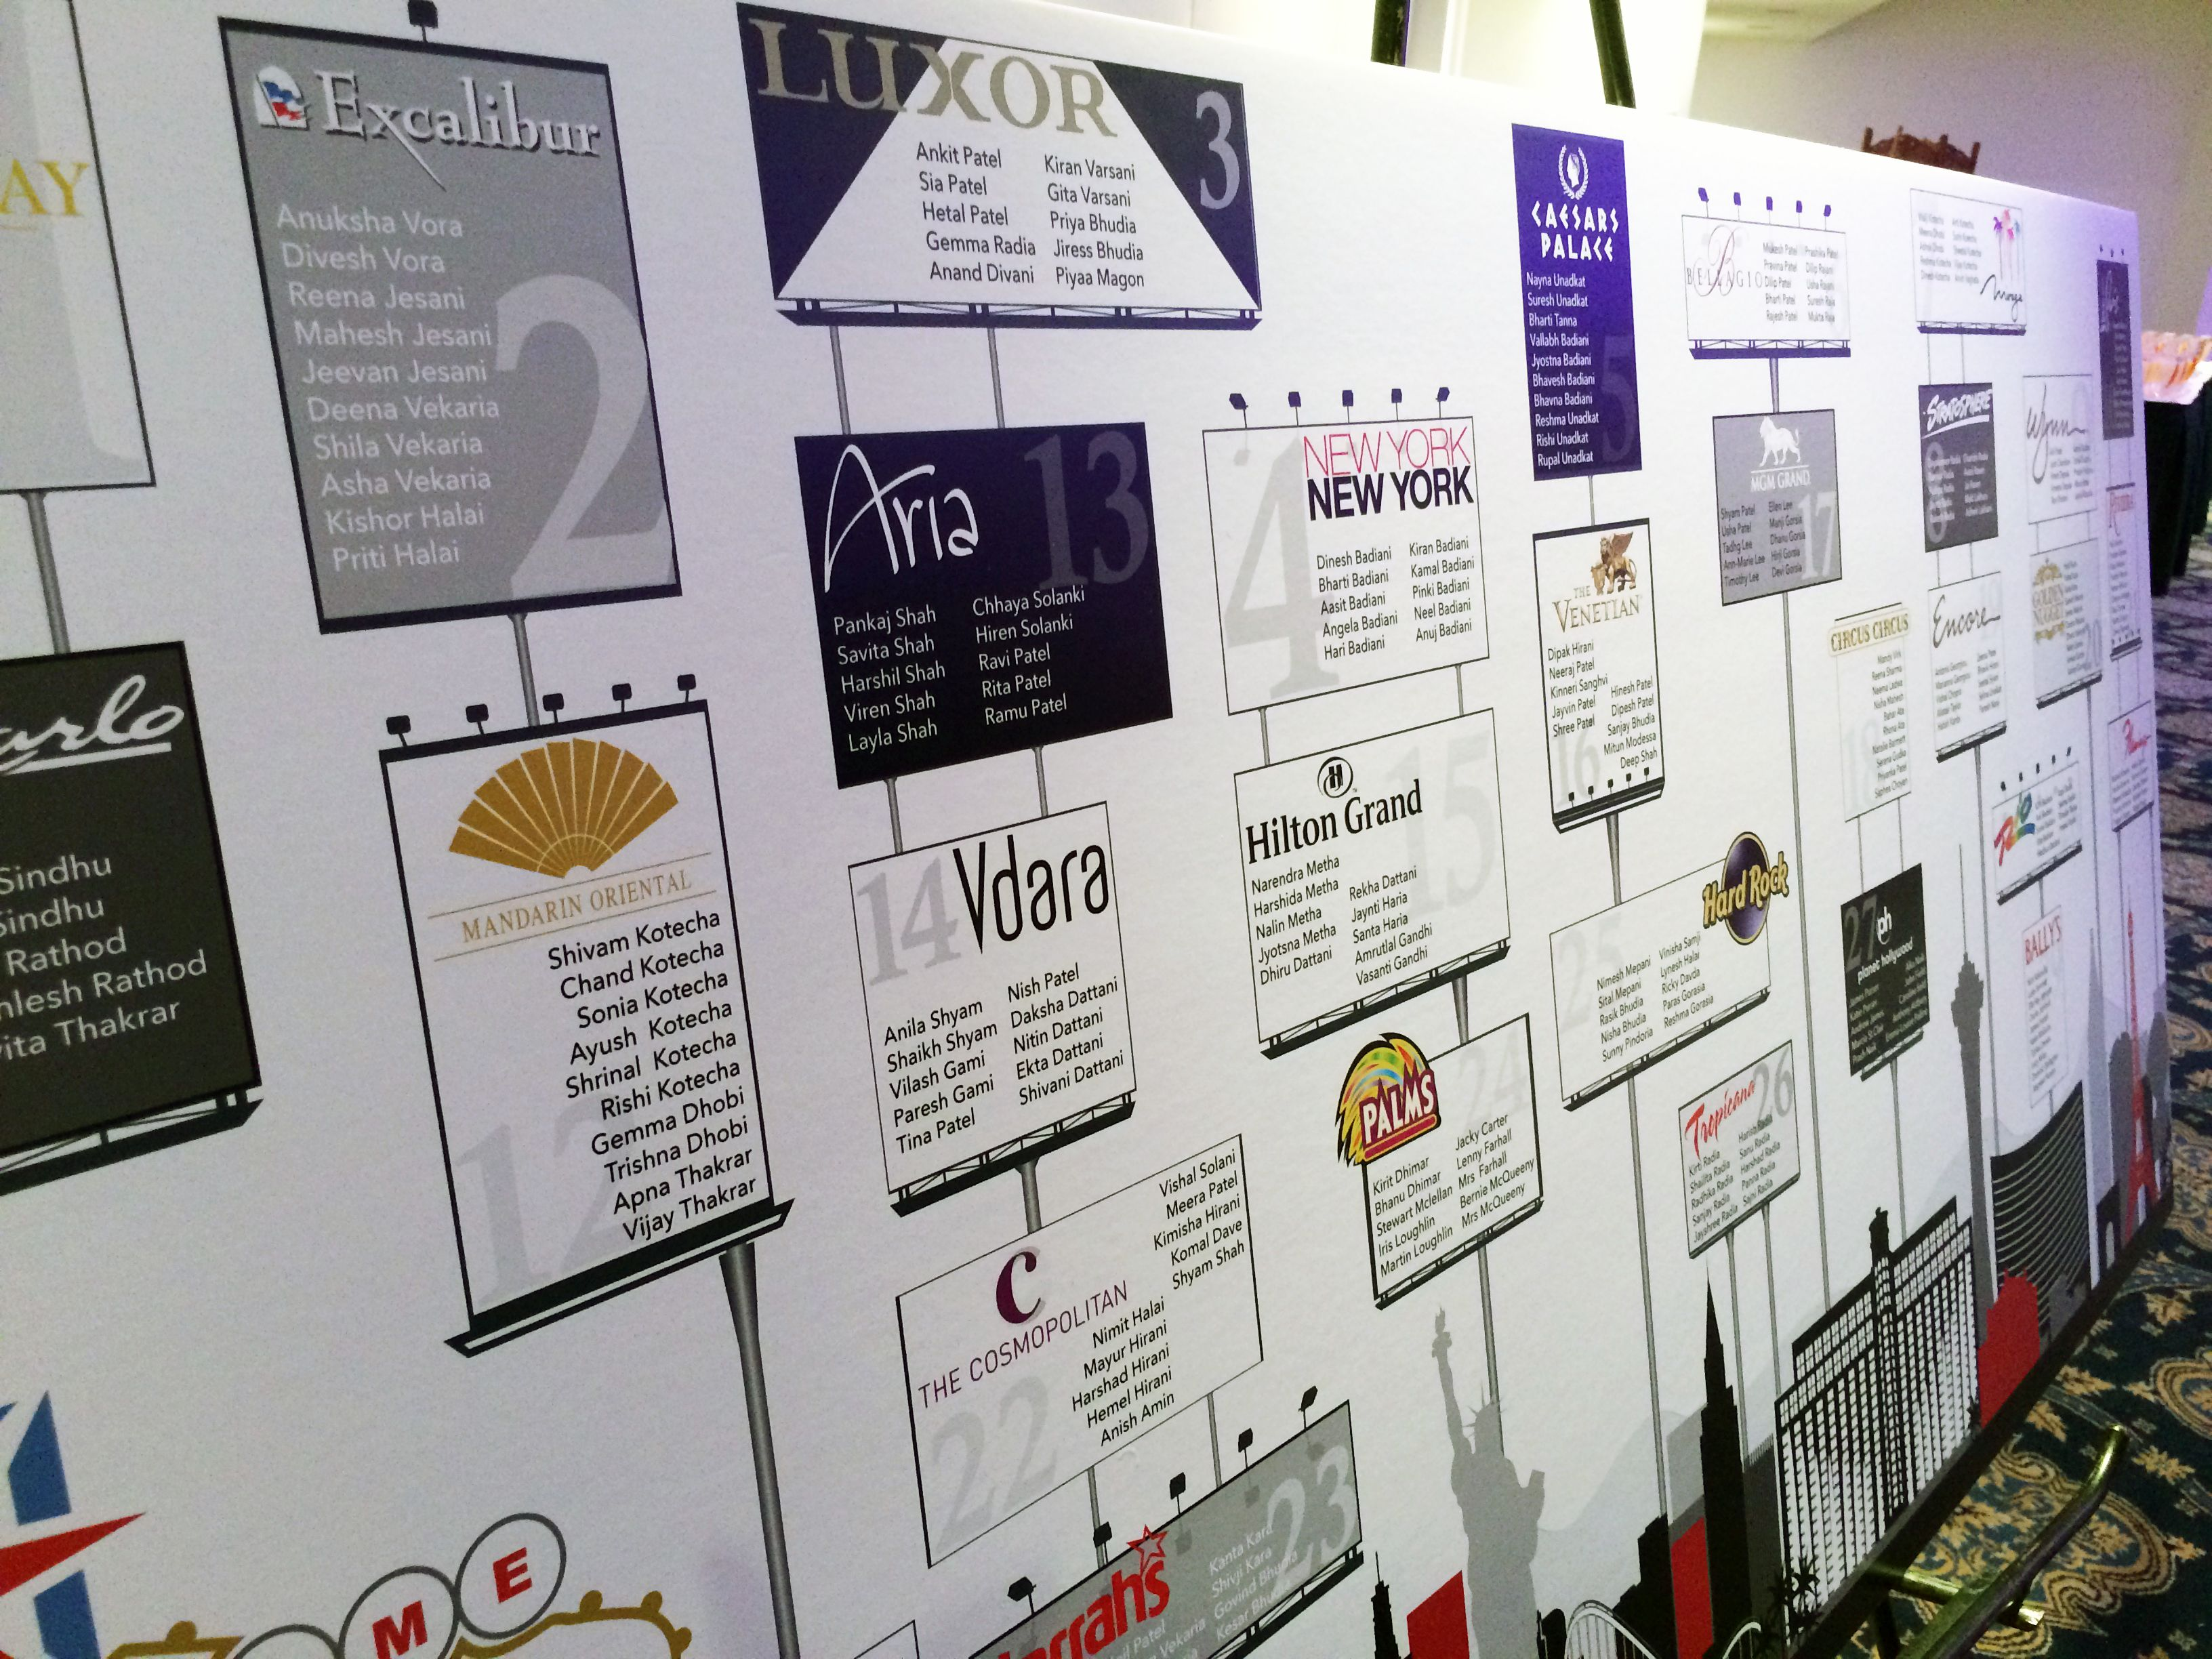 Las Vegas themed wedding reception - seating plan board by Doves ...